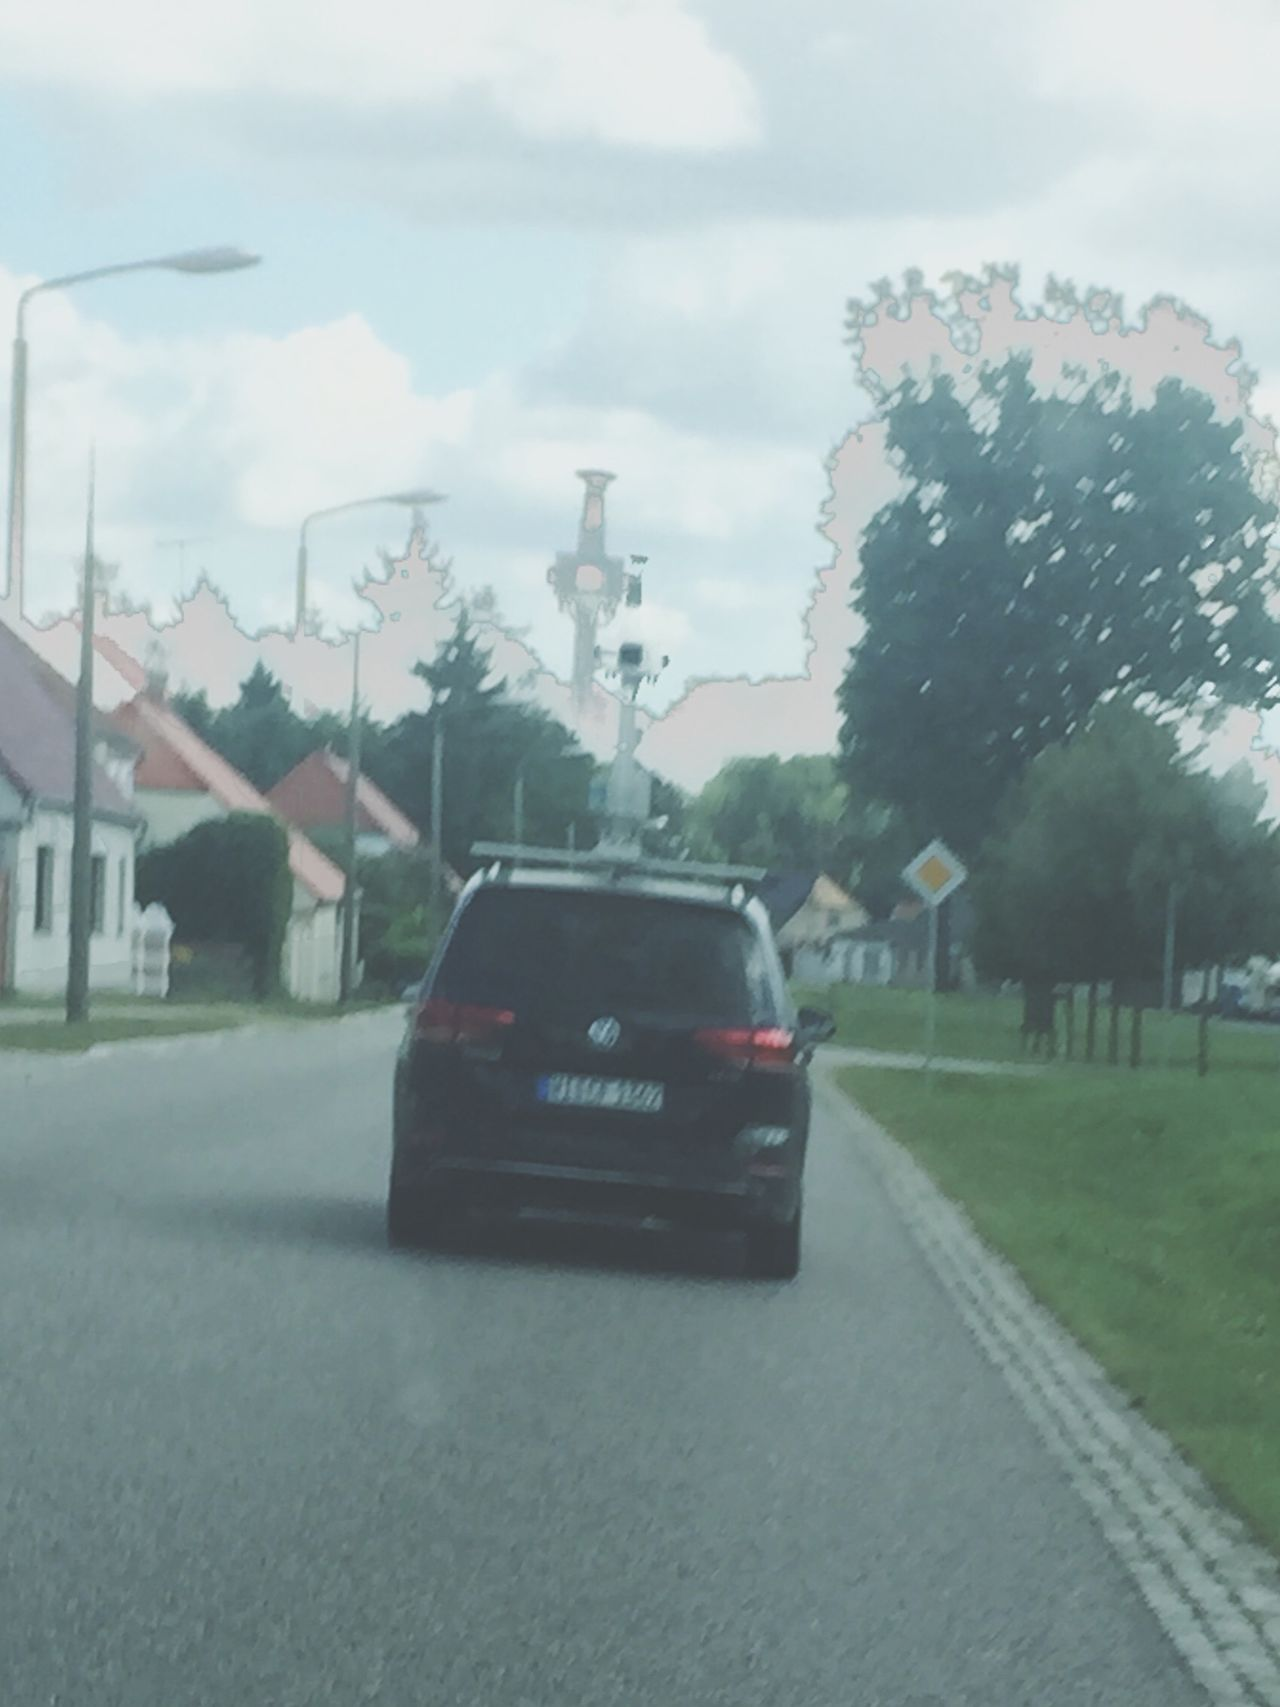 Googlemaps Streetview GoogleCar Countryside Eastgermany Negative Street Car Village